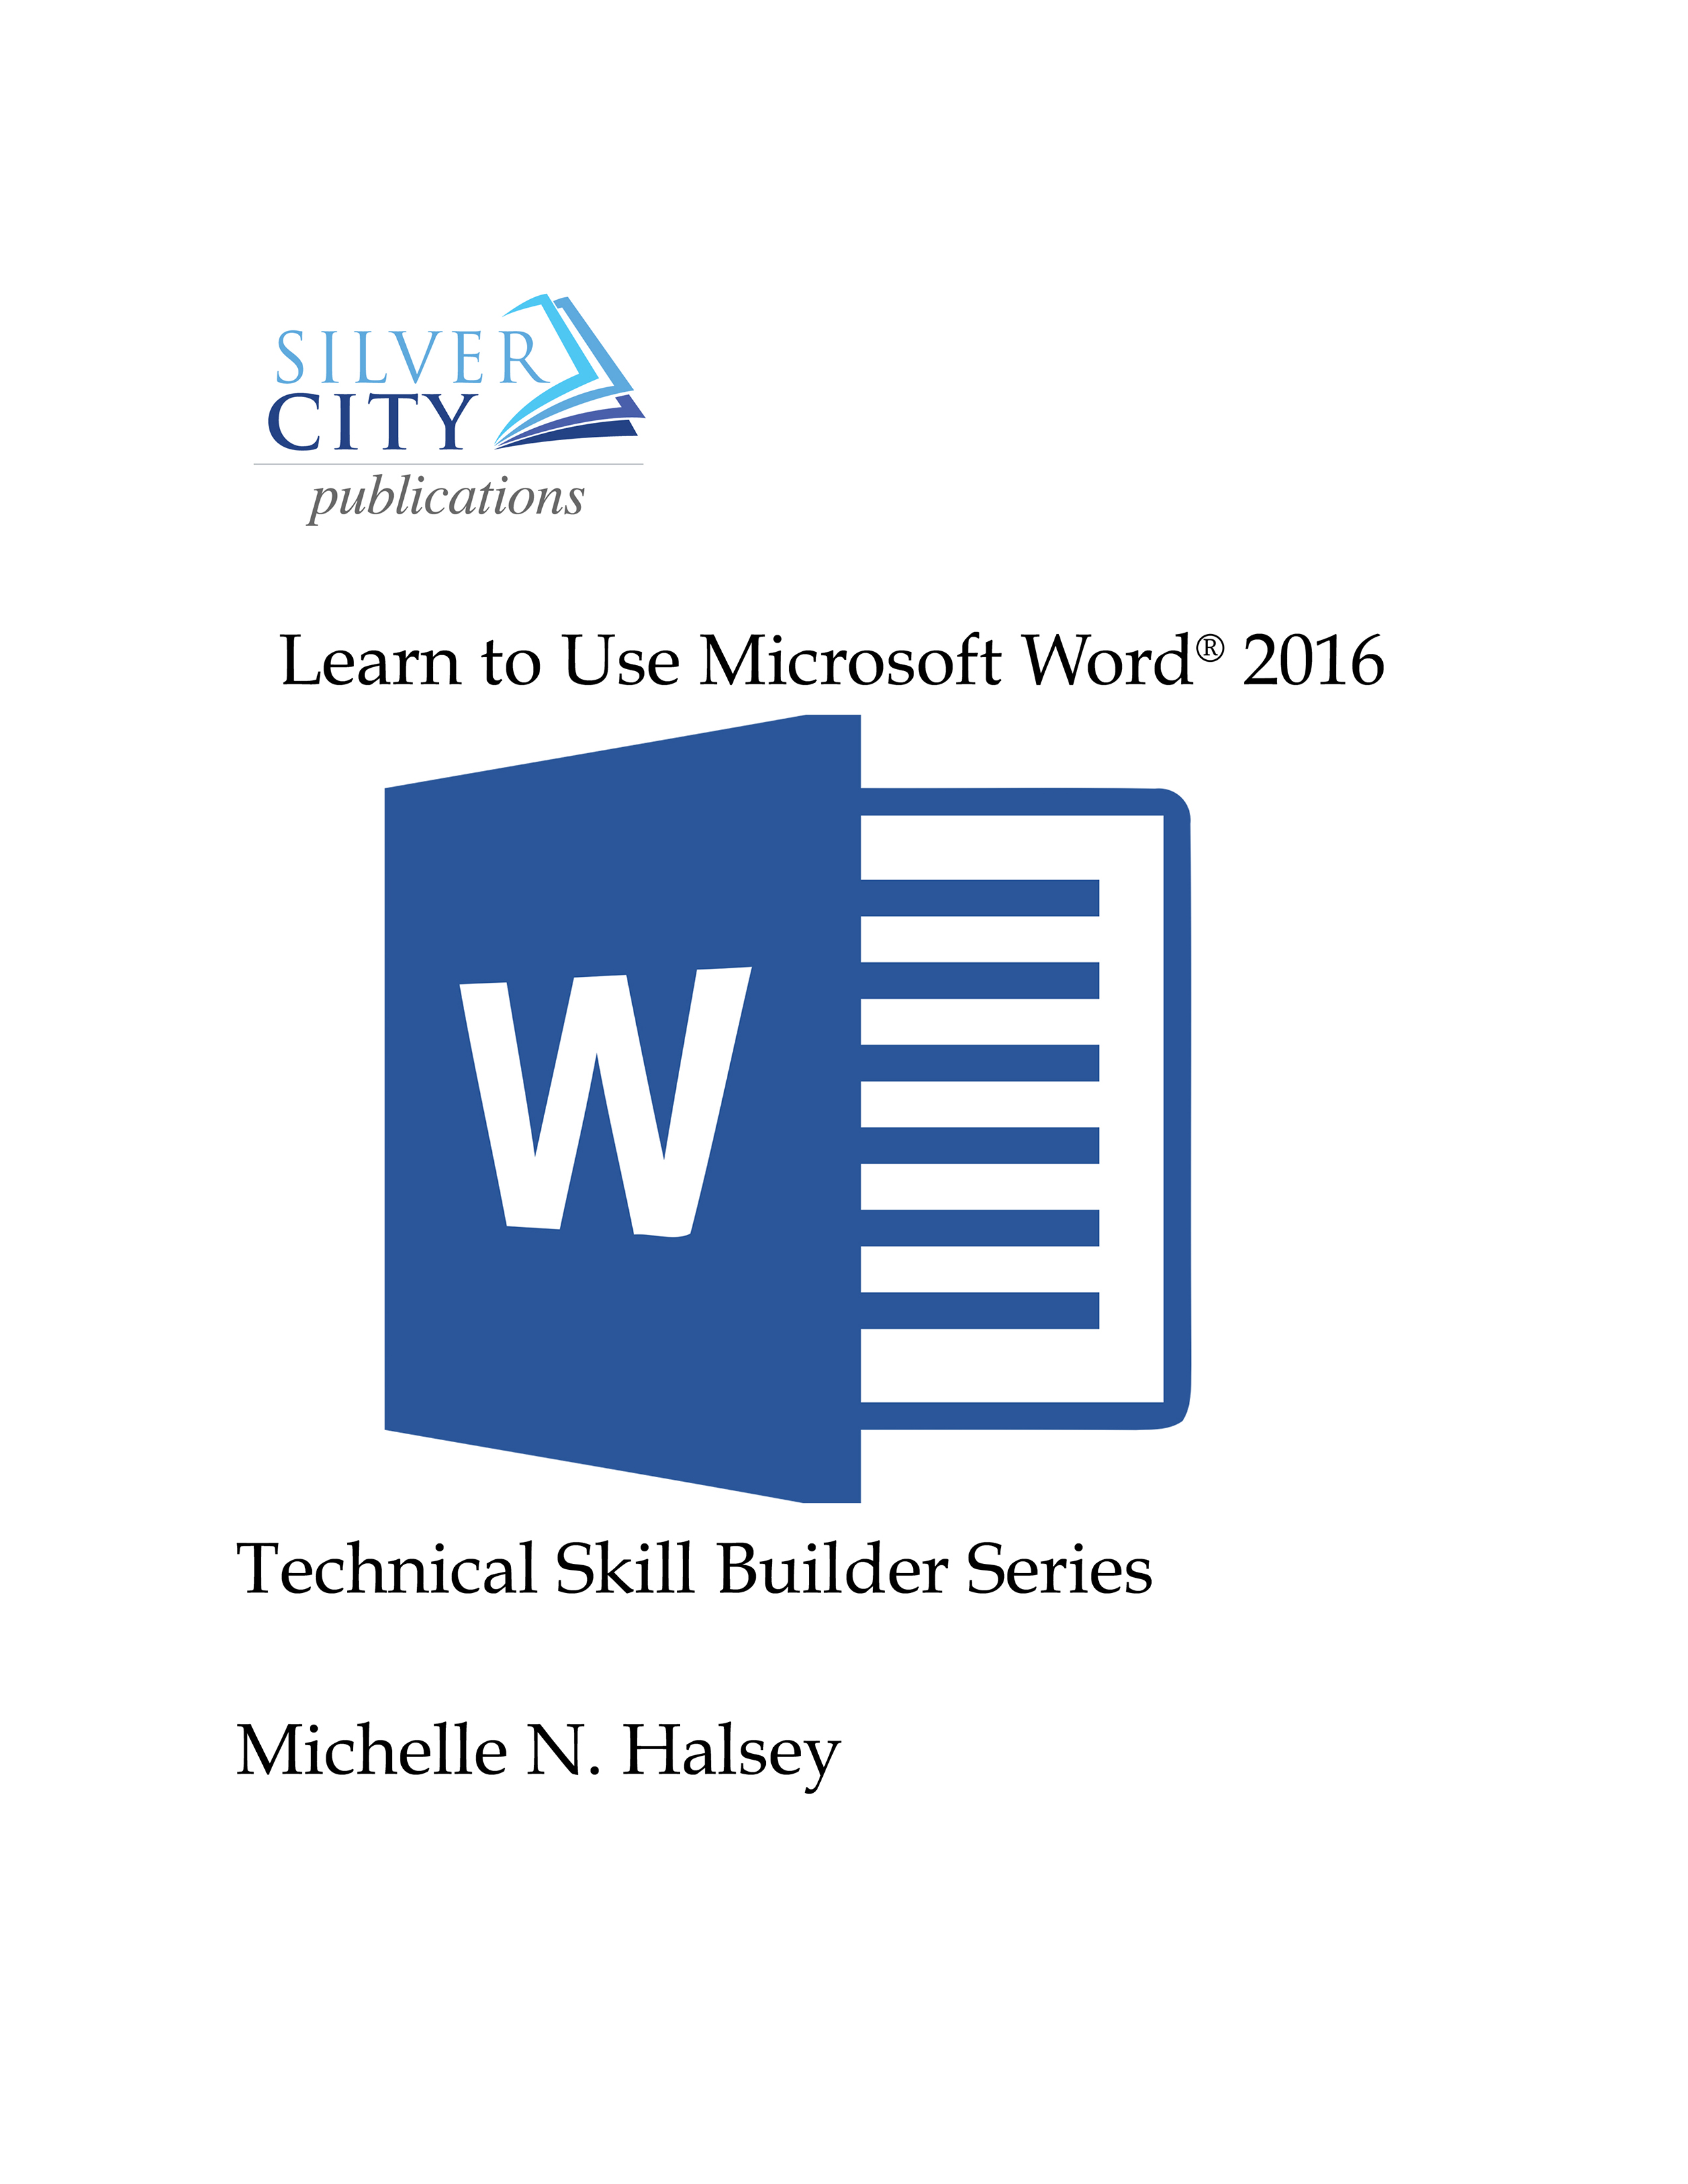 Learn to Use Microsoft Word 2016 Cover